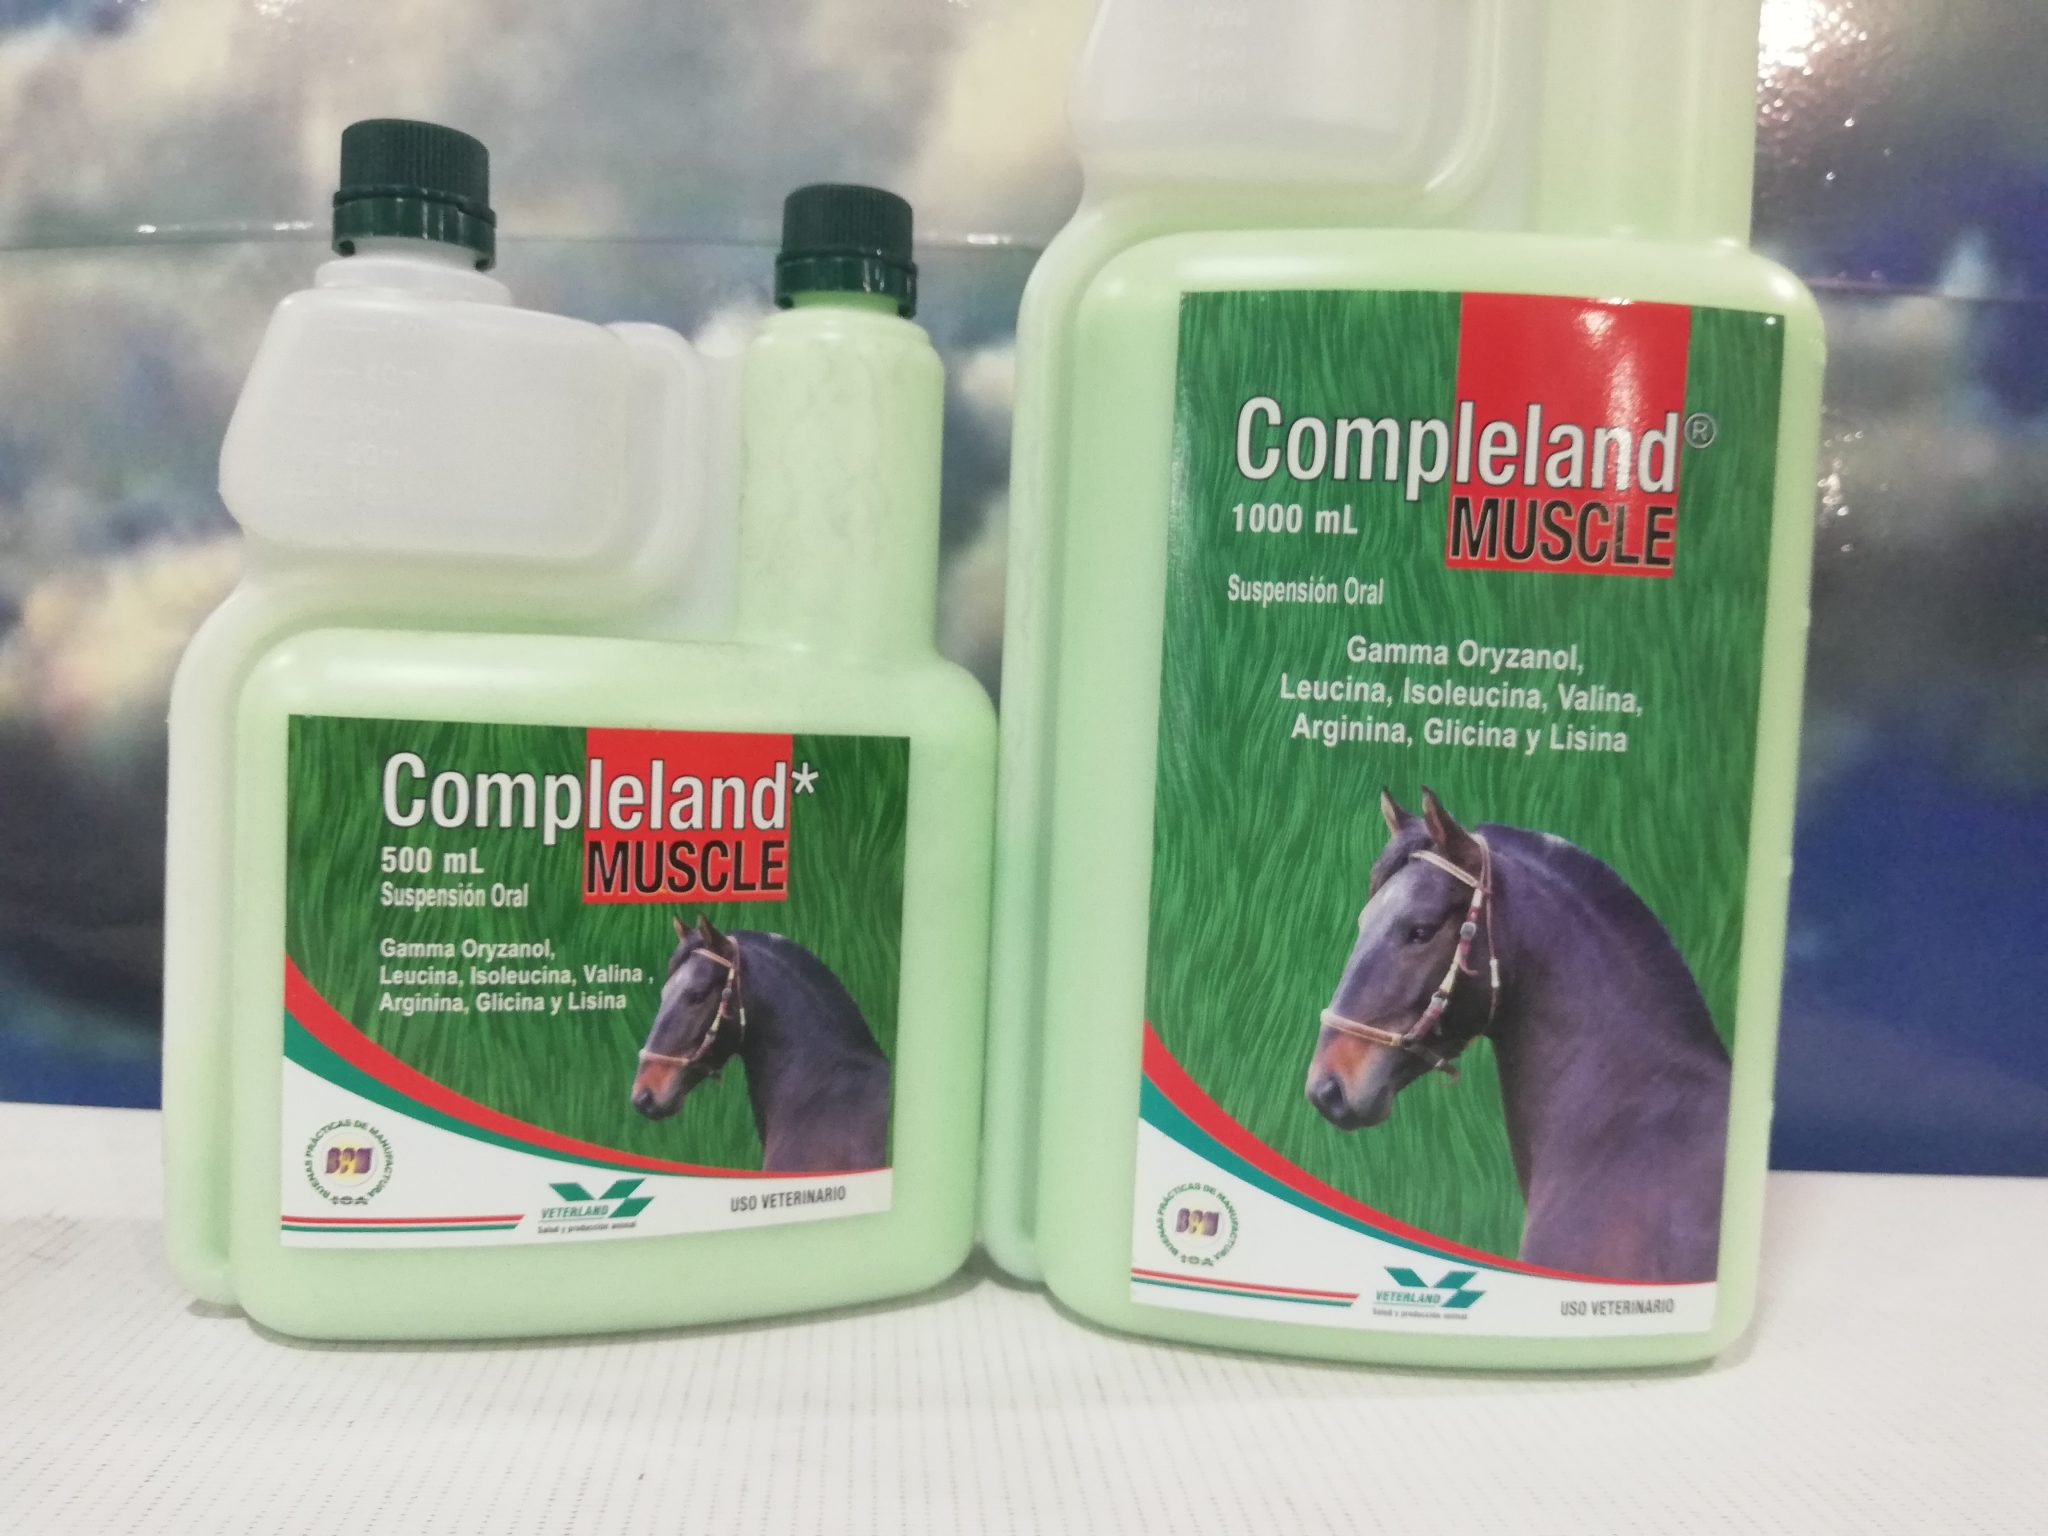 COMPLELAND MUSCLE X 1000ML